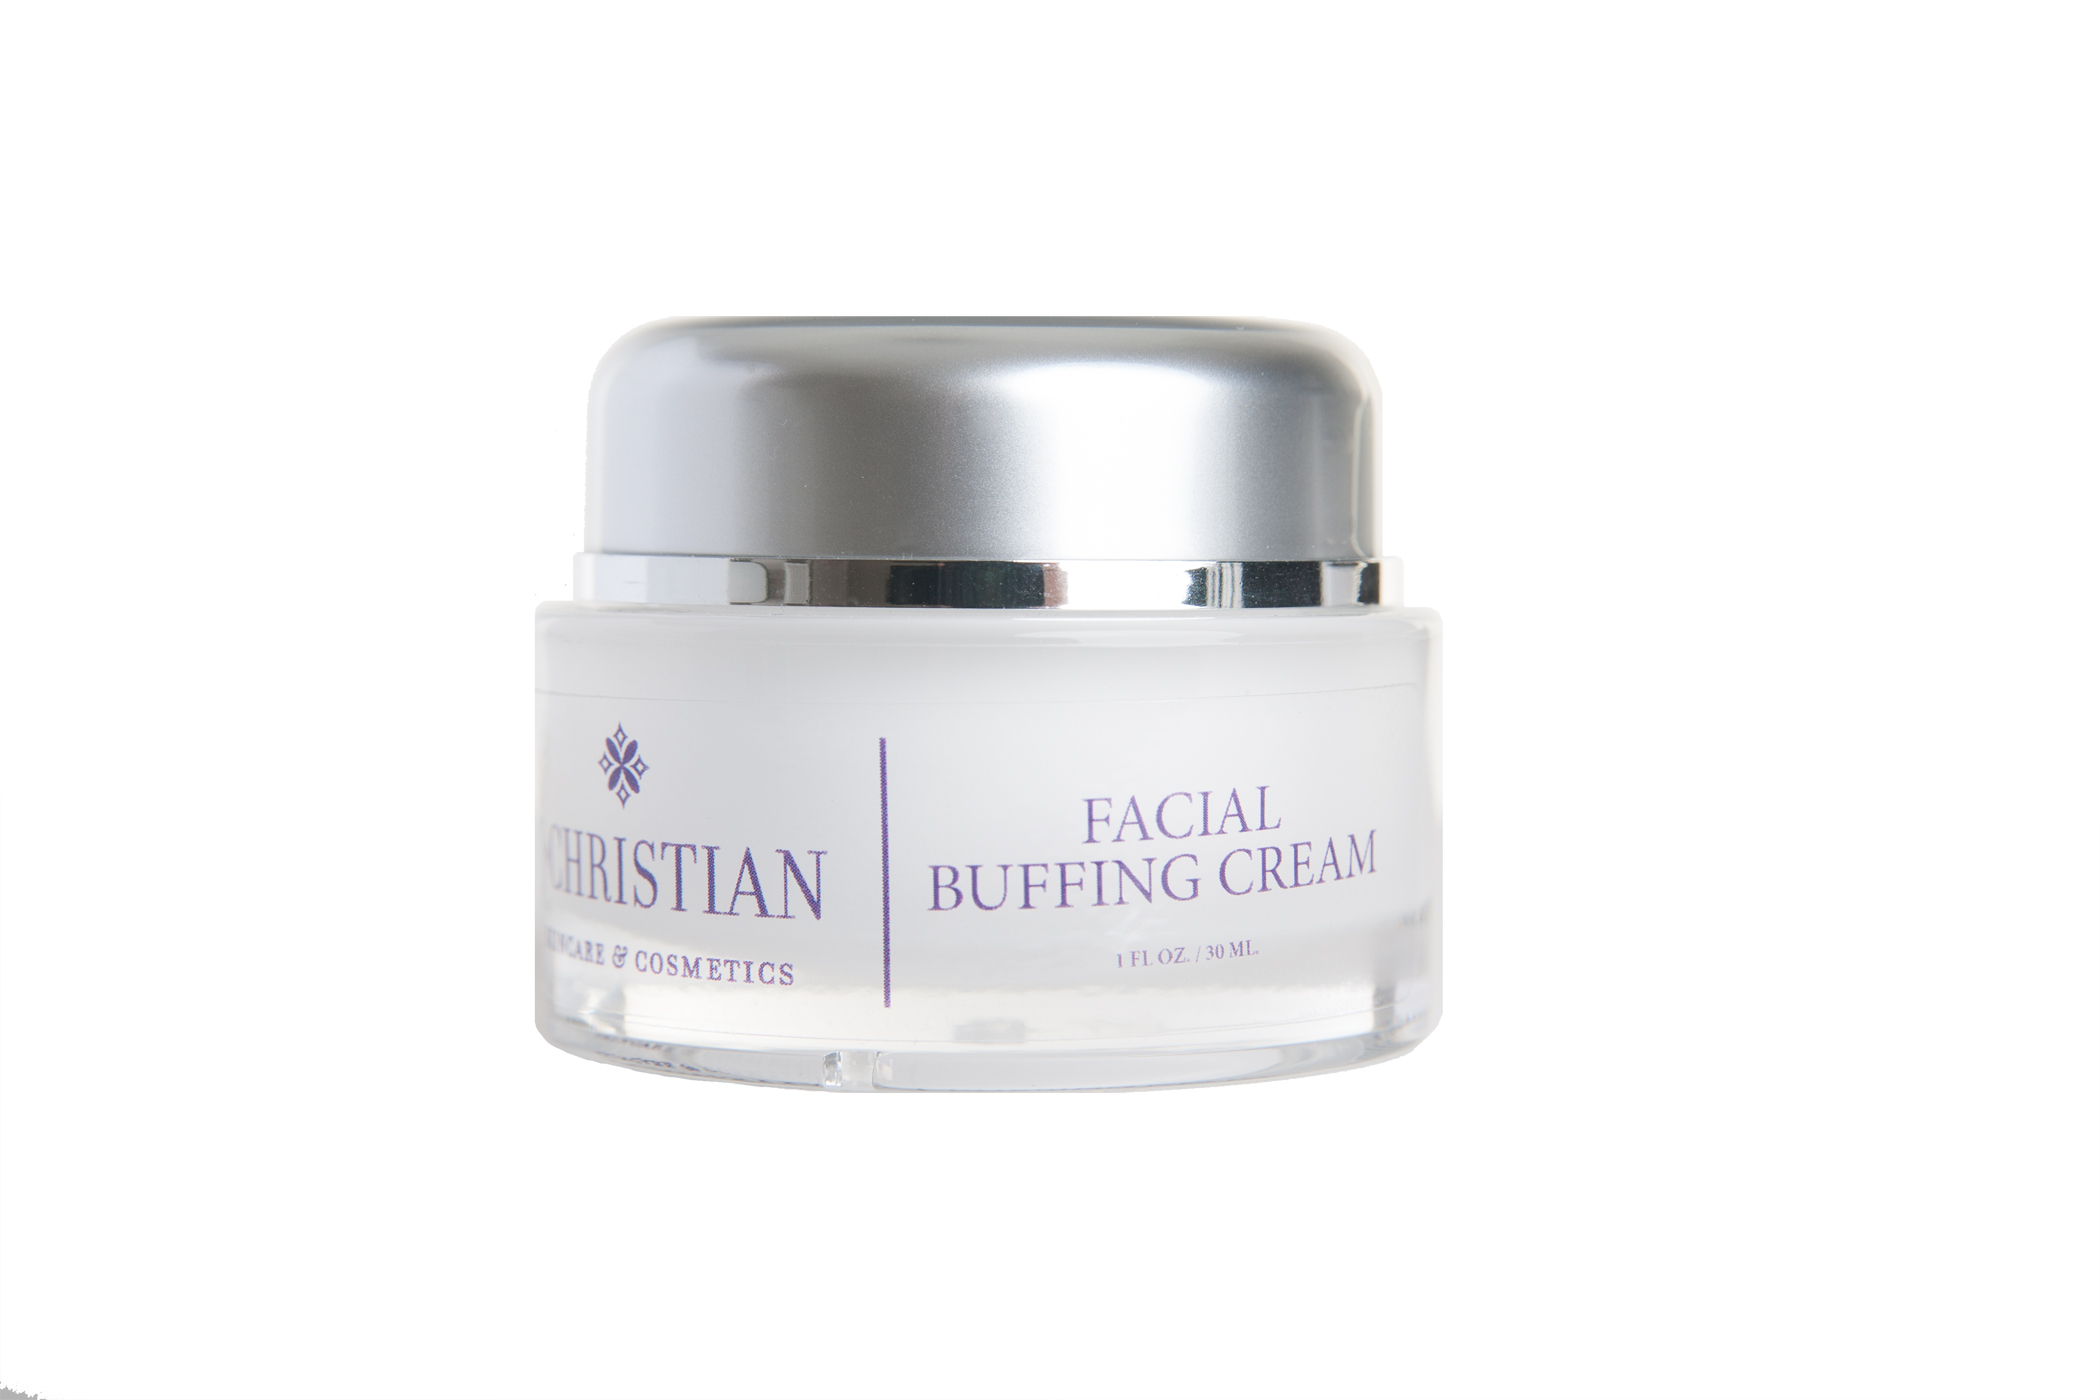 Facial Buffing Cream